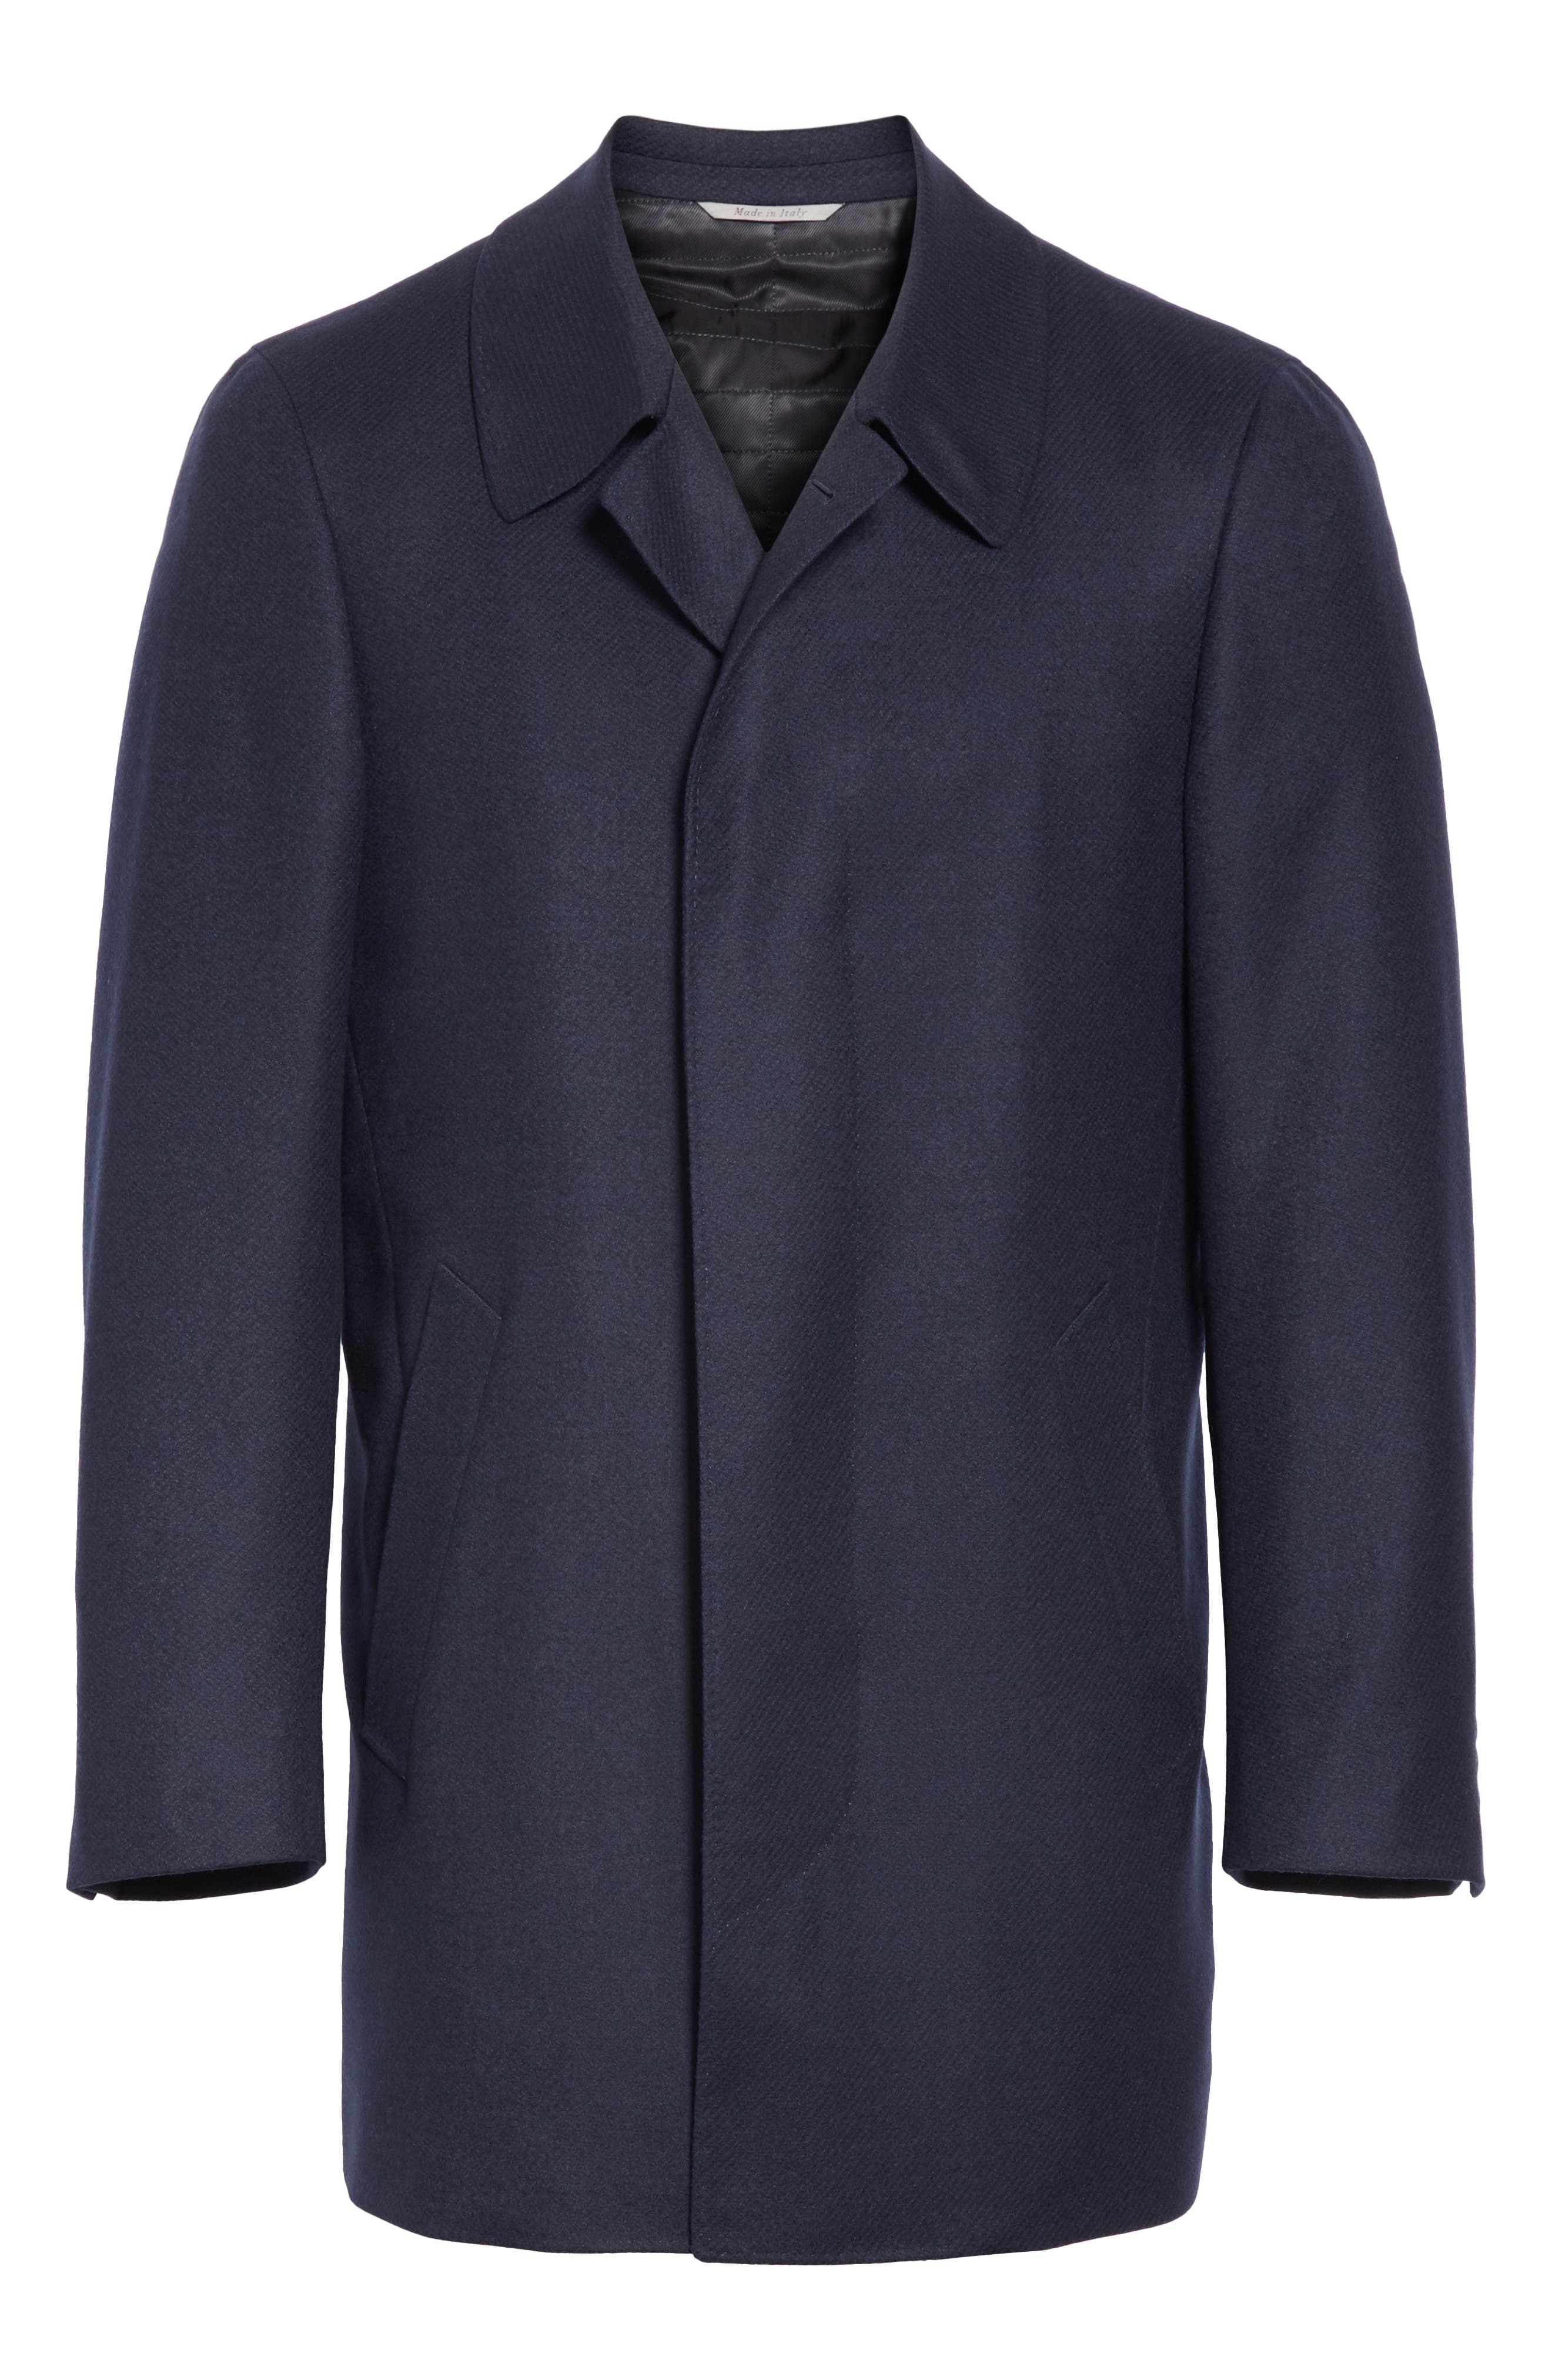 Impeccabile Wool Car Coat,                             Alternate thumbnail 5, color,                             NAVY